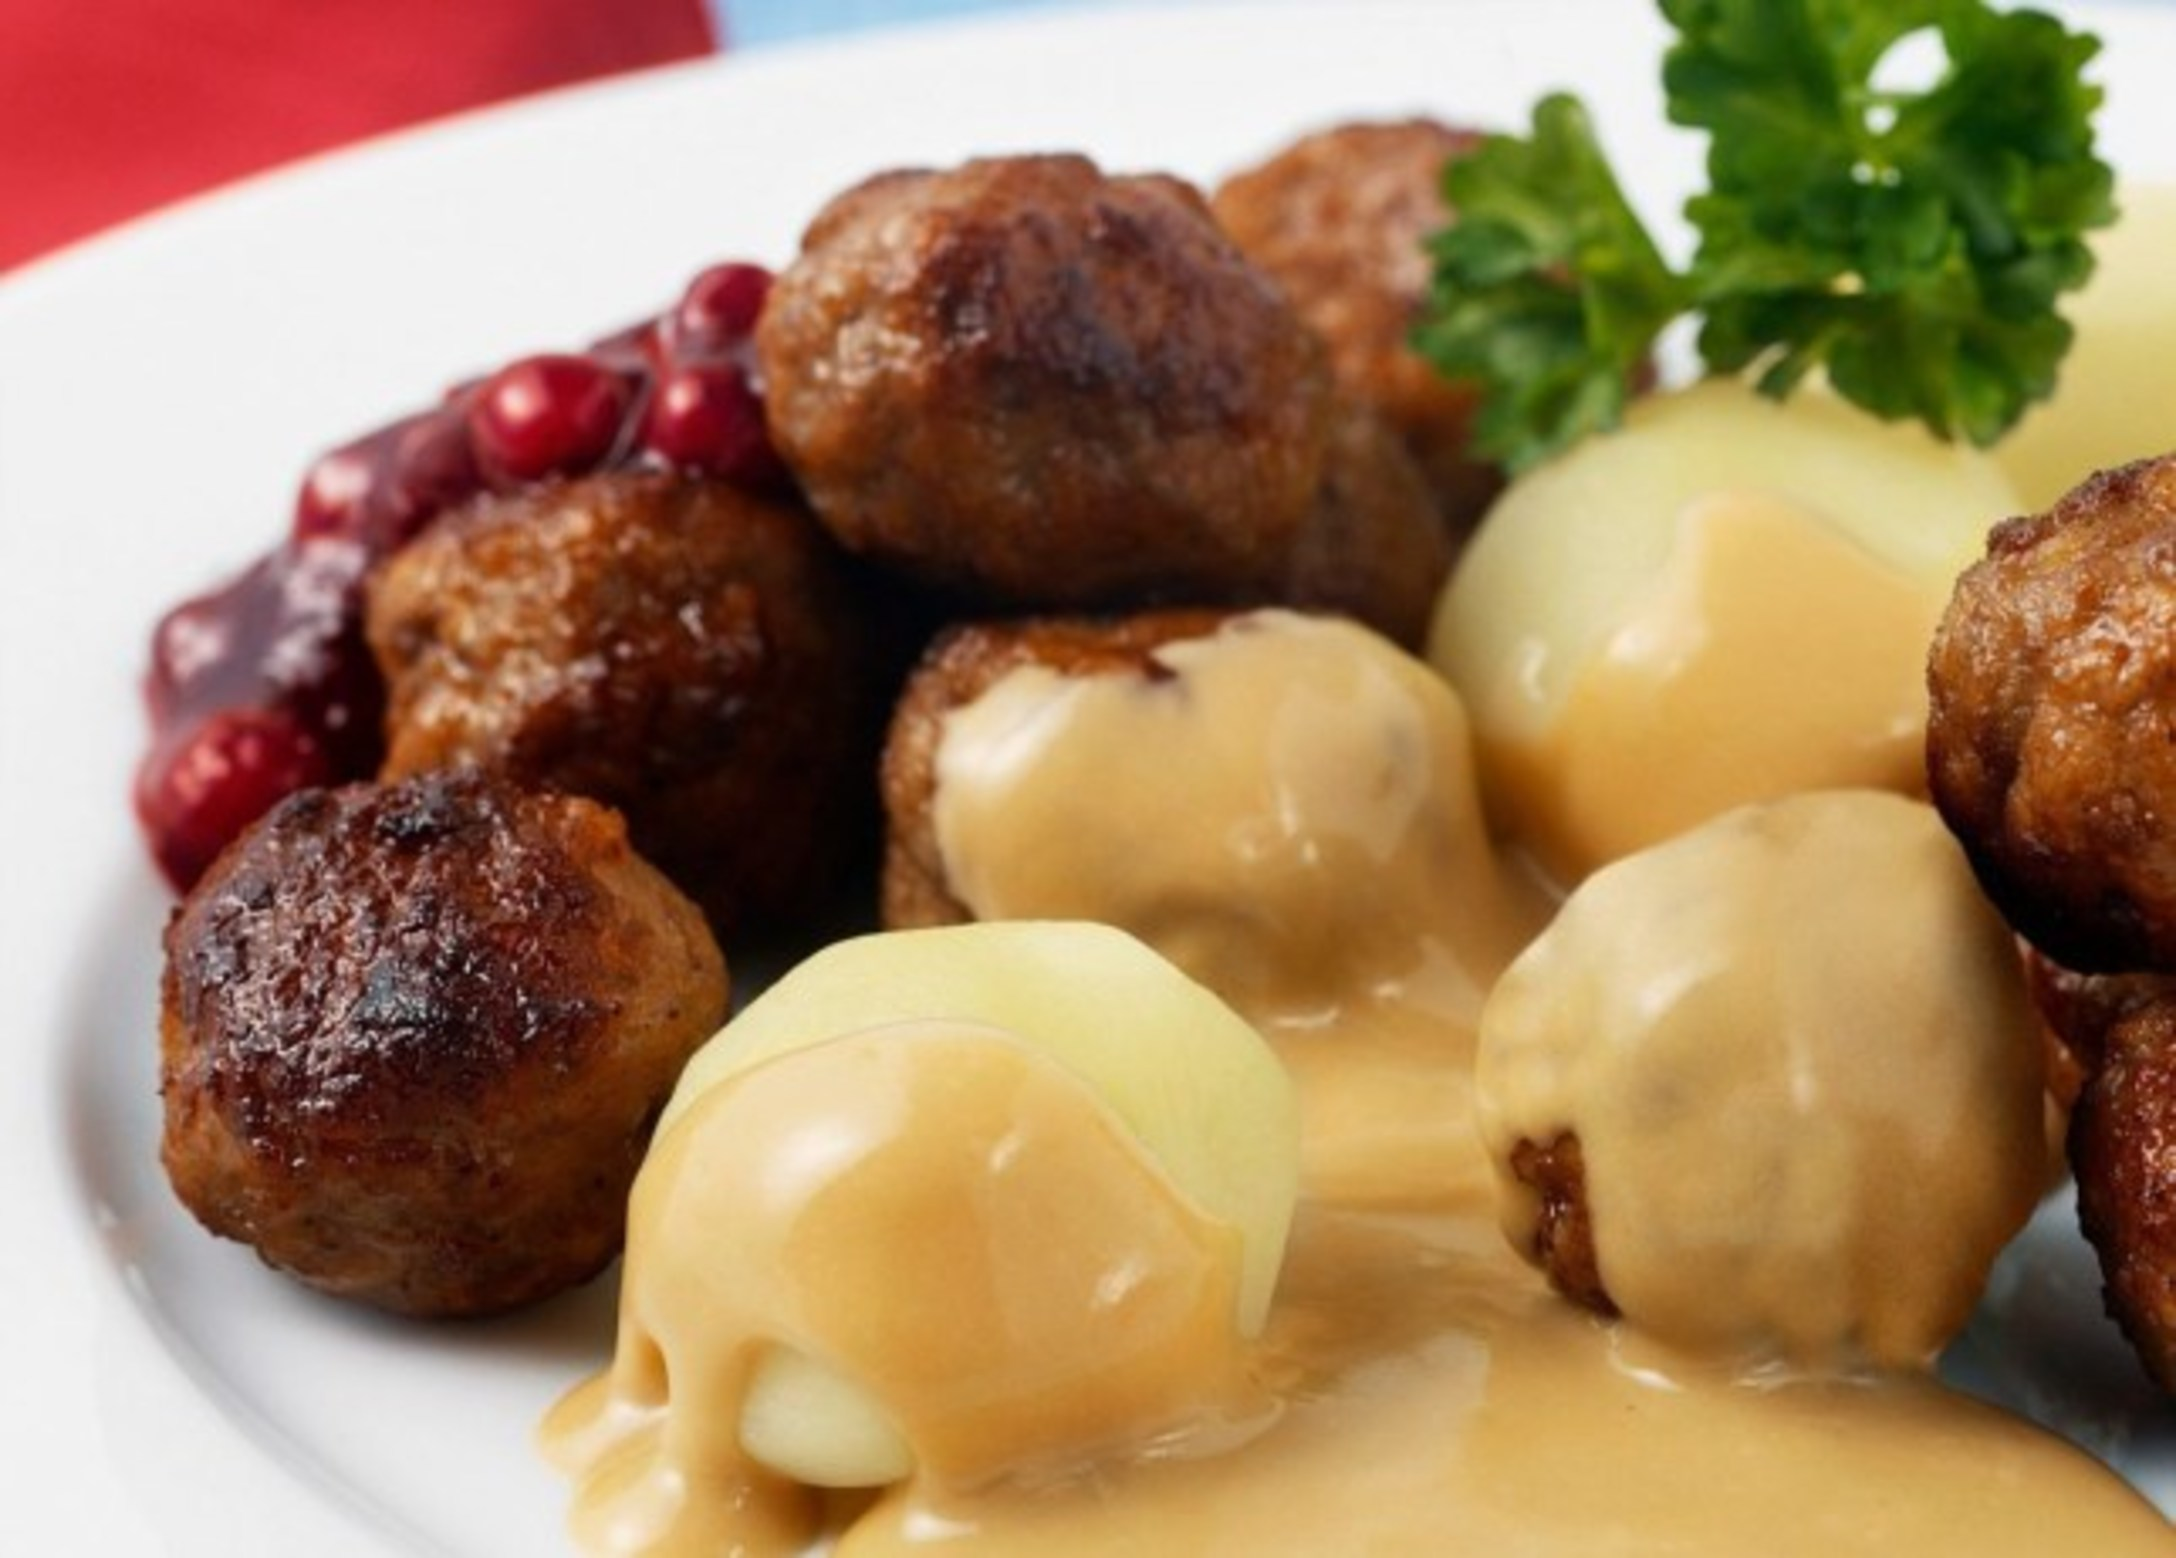 Ikea Shares Their Iconic Swedish Meatball Recipe So We Can All Make It At Home Mom Com